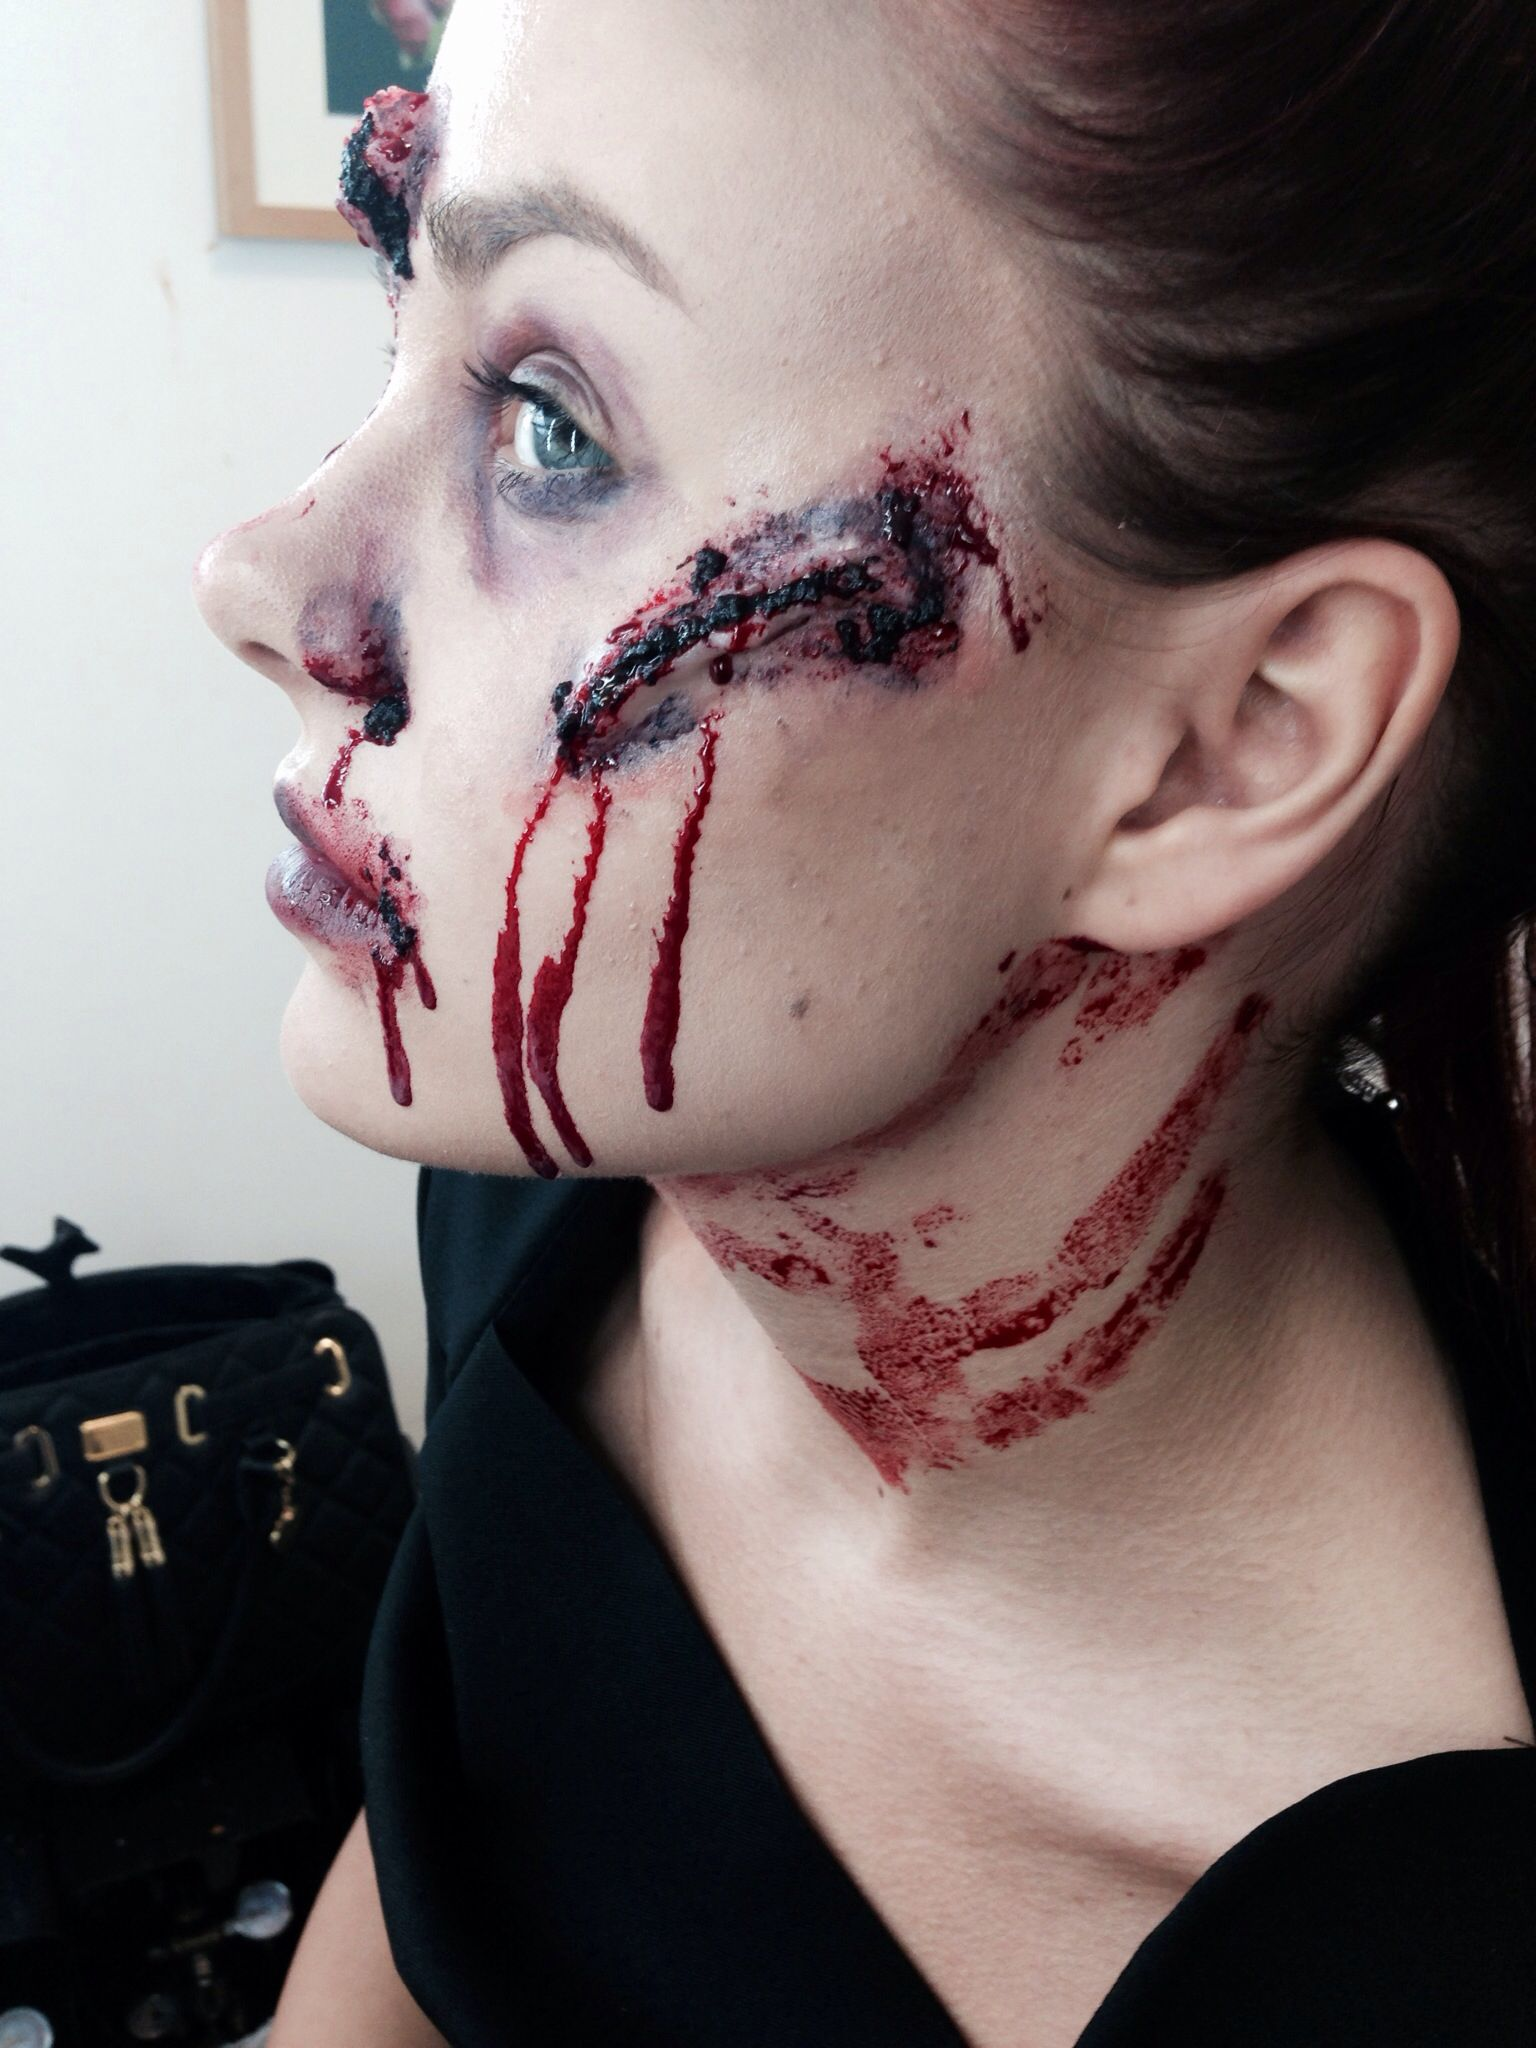 Scar cut throat scary halloween makeup | Haunted house | Pinterest ...